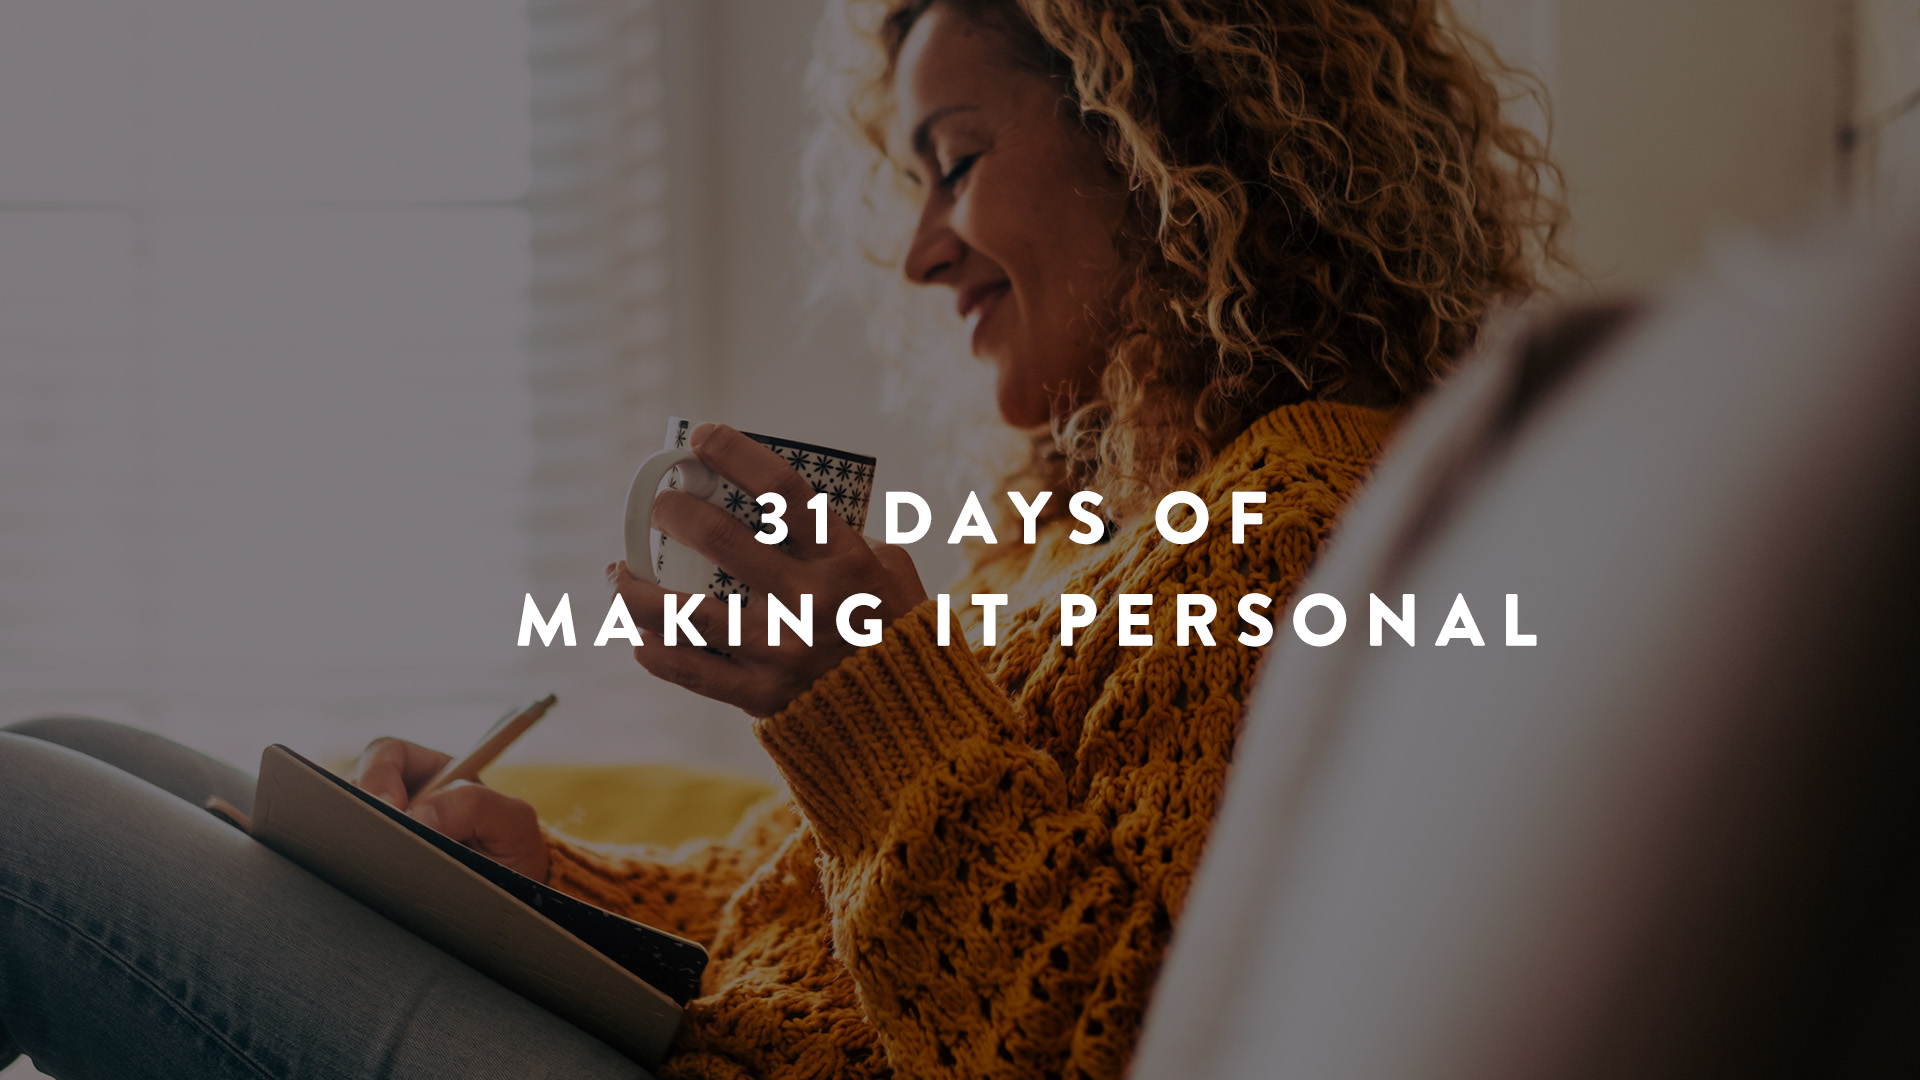 31 Days of making it personal